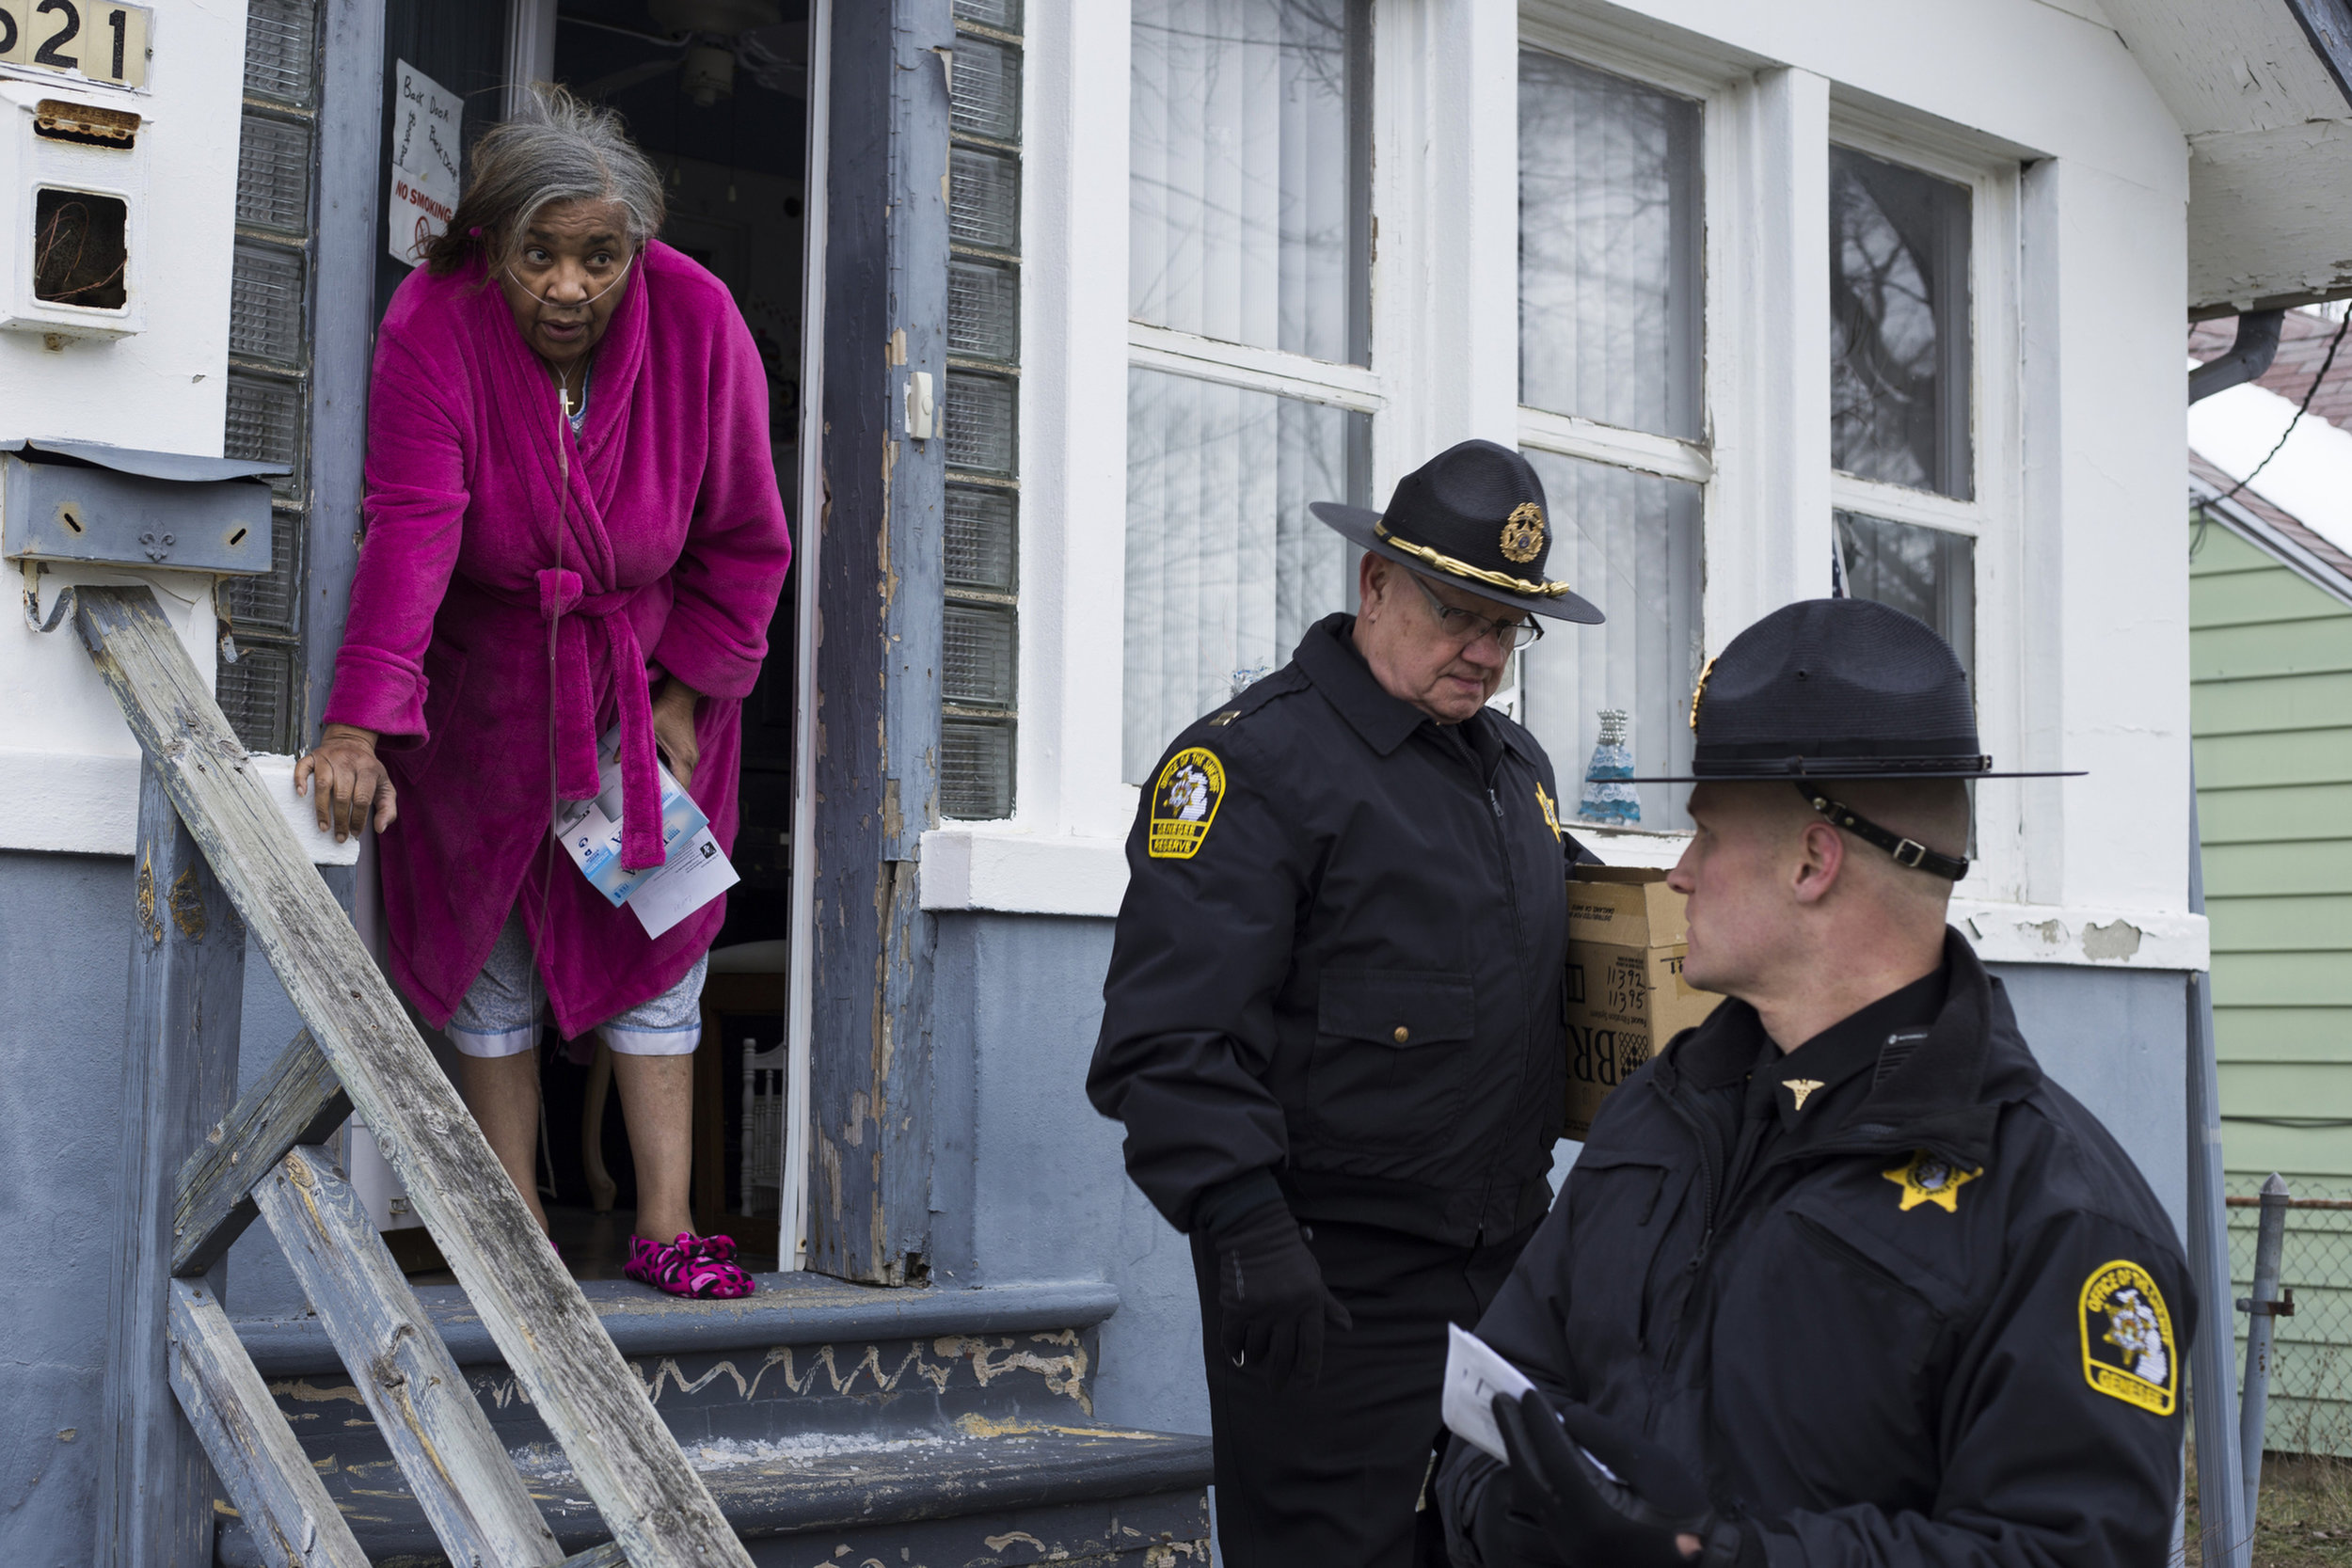 Bertha White, 64, of Flint, Mich., opens her front door to local police officers to accept a new filter and gallon jugs of water during a distribution to residents by the Genesee County sheriff's office on January 7, 2016. Distributions continued through the day on the city's north side, which is lower income, with 1,000 water filters on the service truck. A primary worry for local officials had been that the limited mobility for the elderly forced them to drink the lead tainted tap water for longer than the rest of the population. The door to door program was eventually replaced by a hotline that elderly citizens could call for water deliveries.